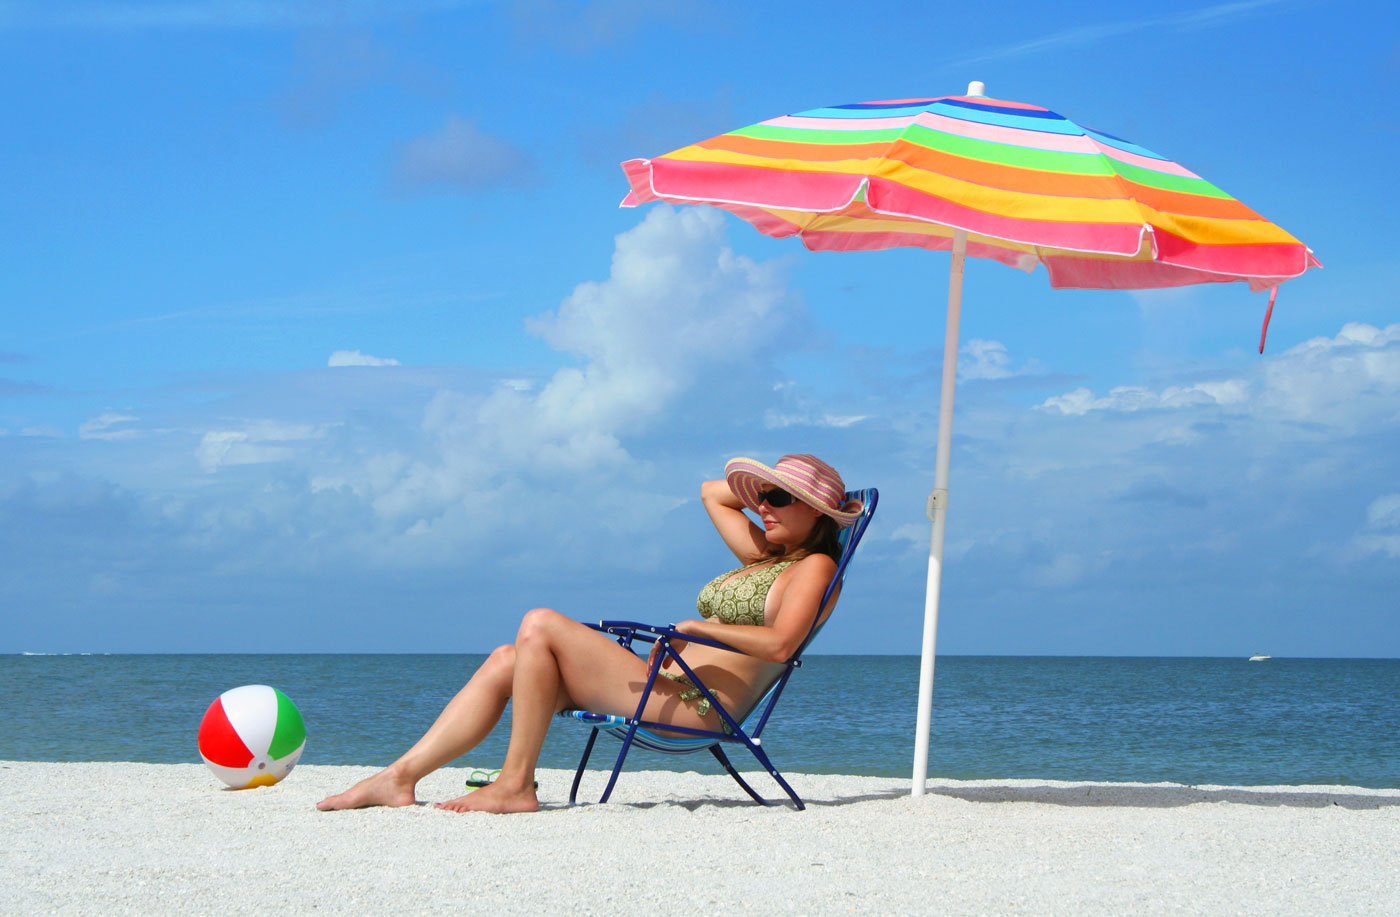 Lady sitting under parasol on a sun-kissed beach